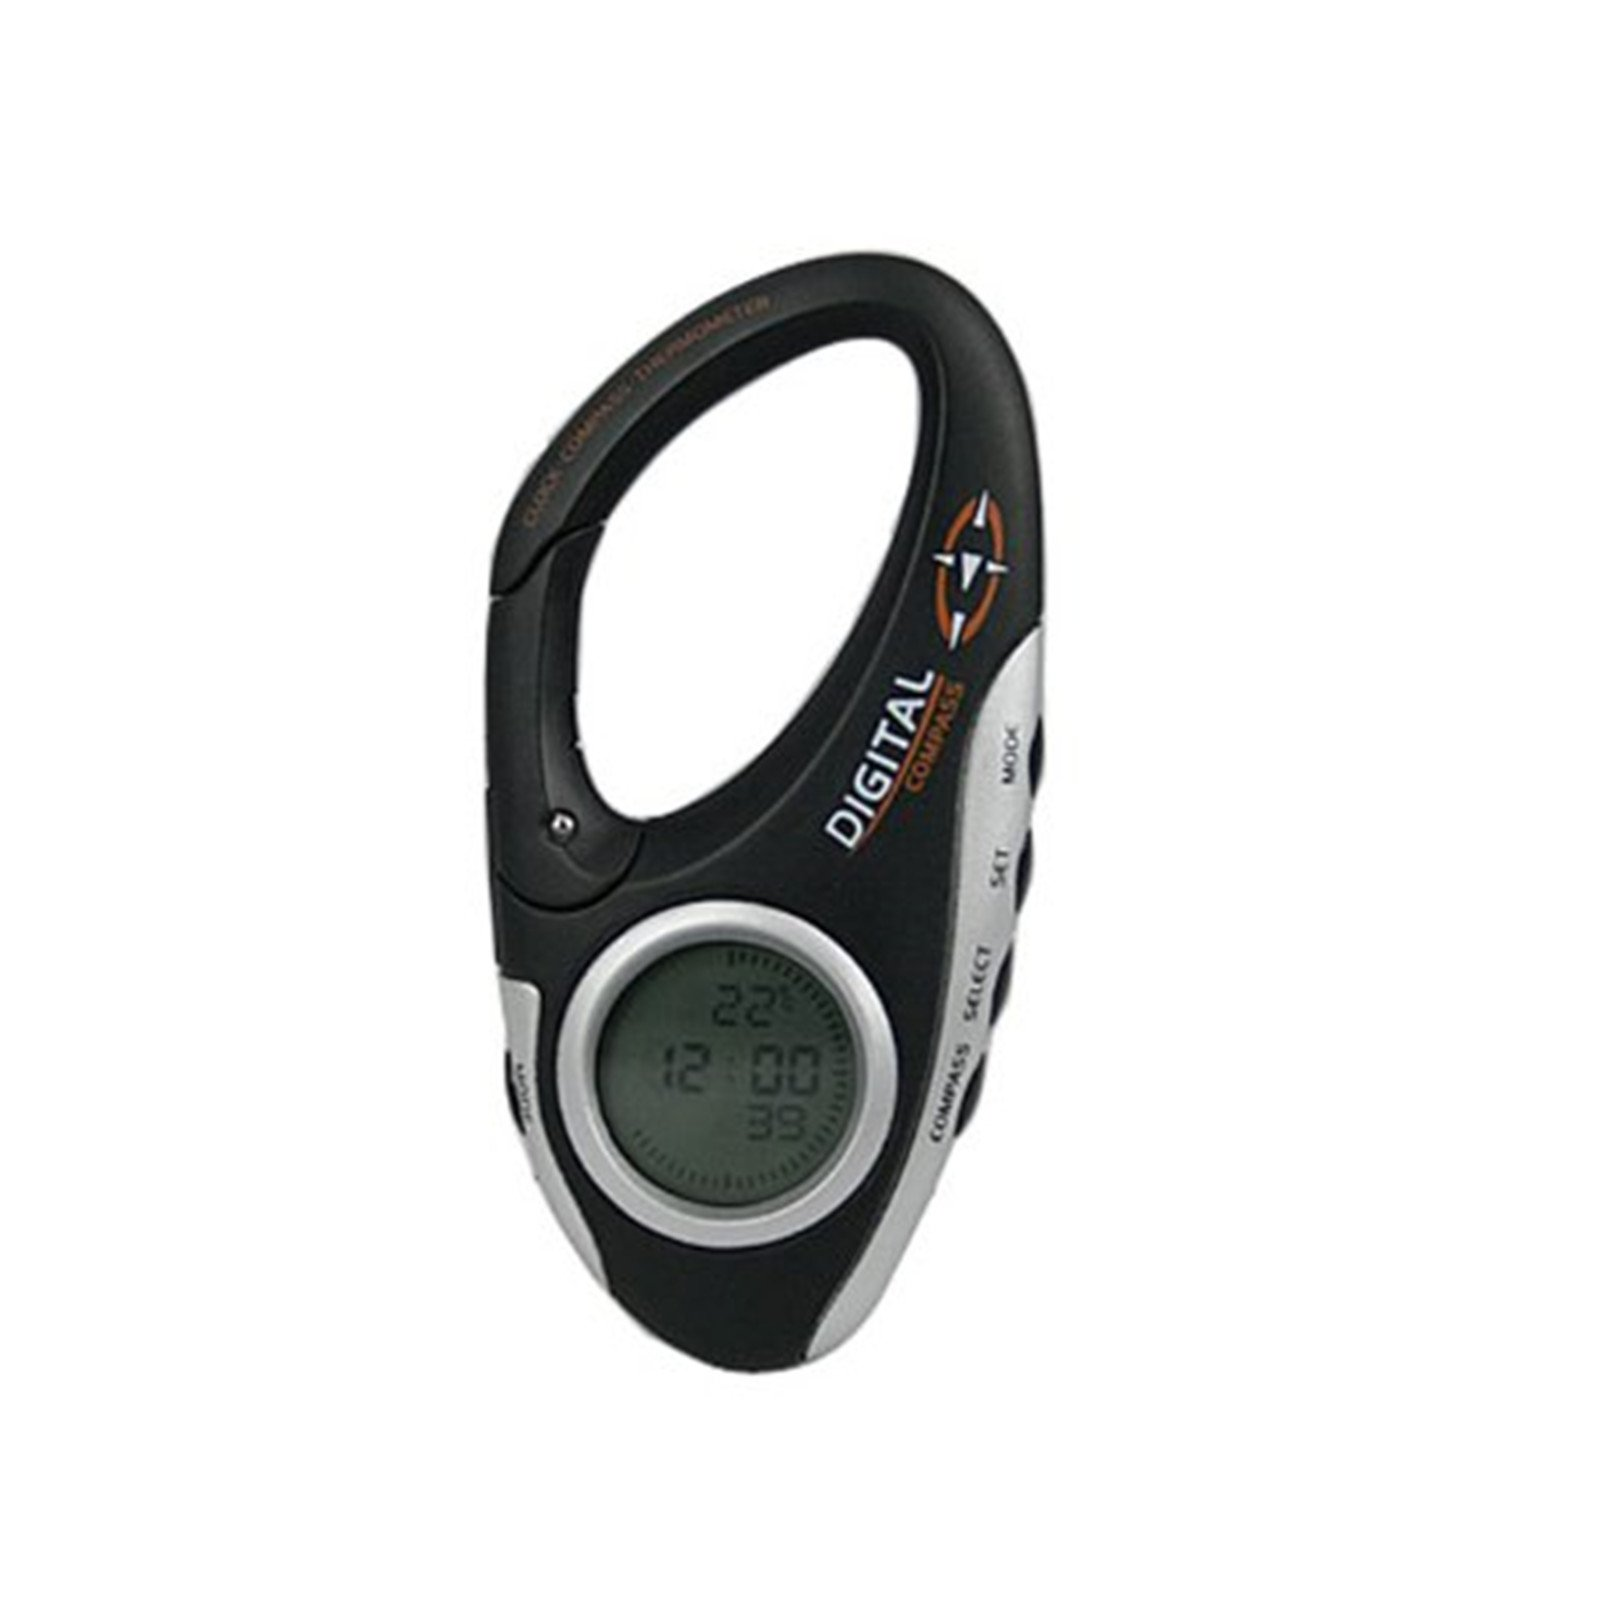 Allytech Handheld Electronic Digital Compasses with Thermometer Clock LCD Display Mini Carabiner Clip Backlight Outdoor Travel For Sports Camping (Not including batteries)